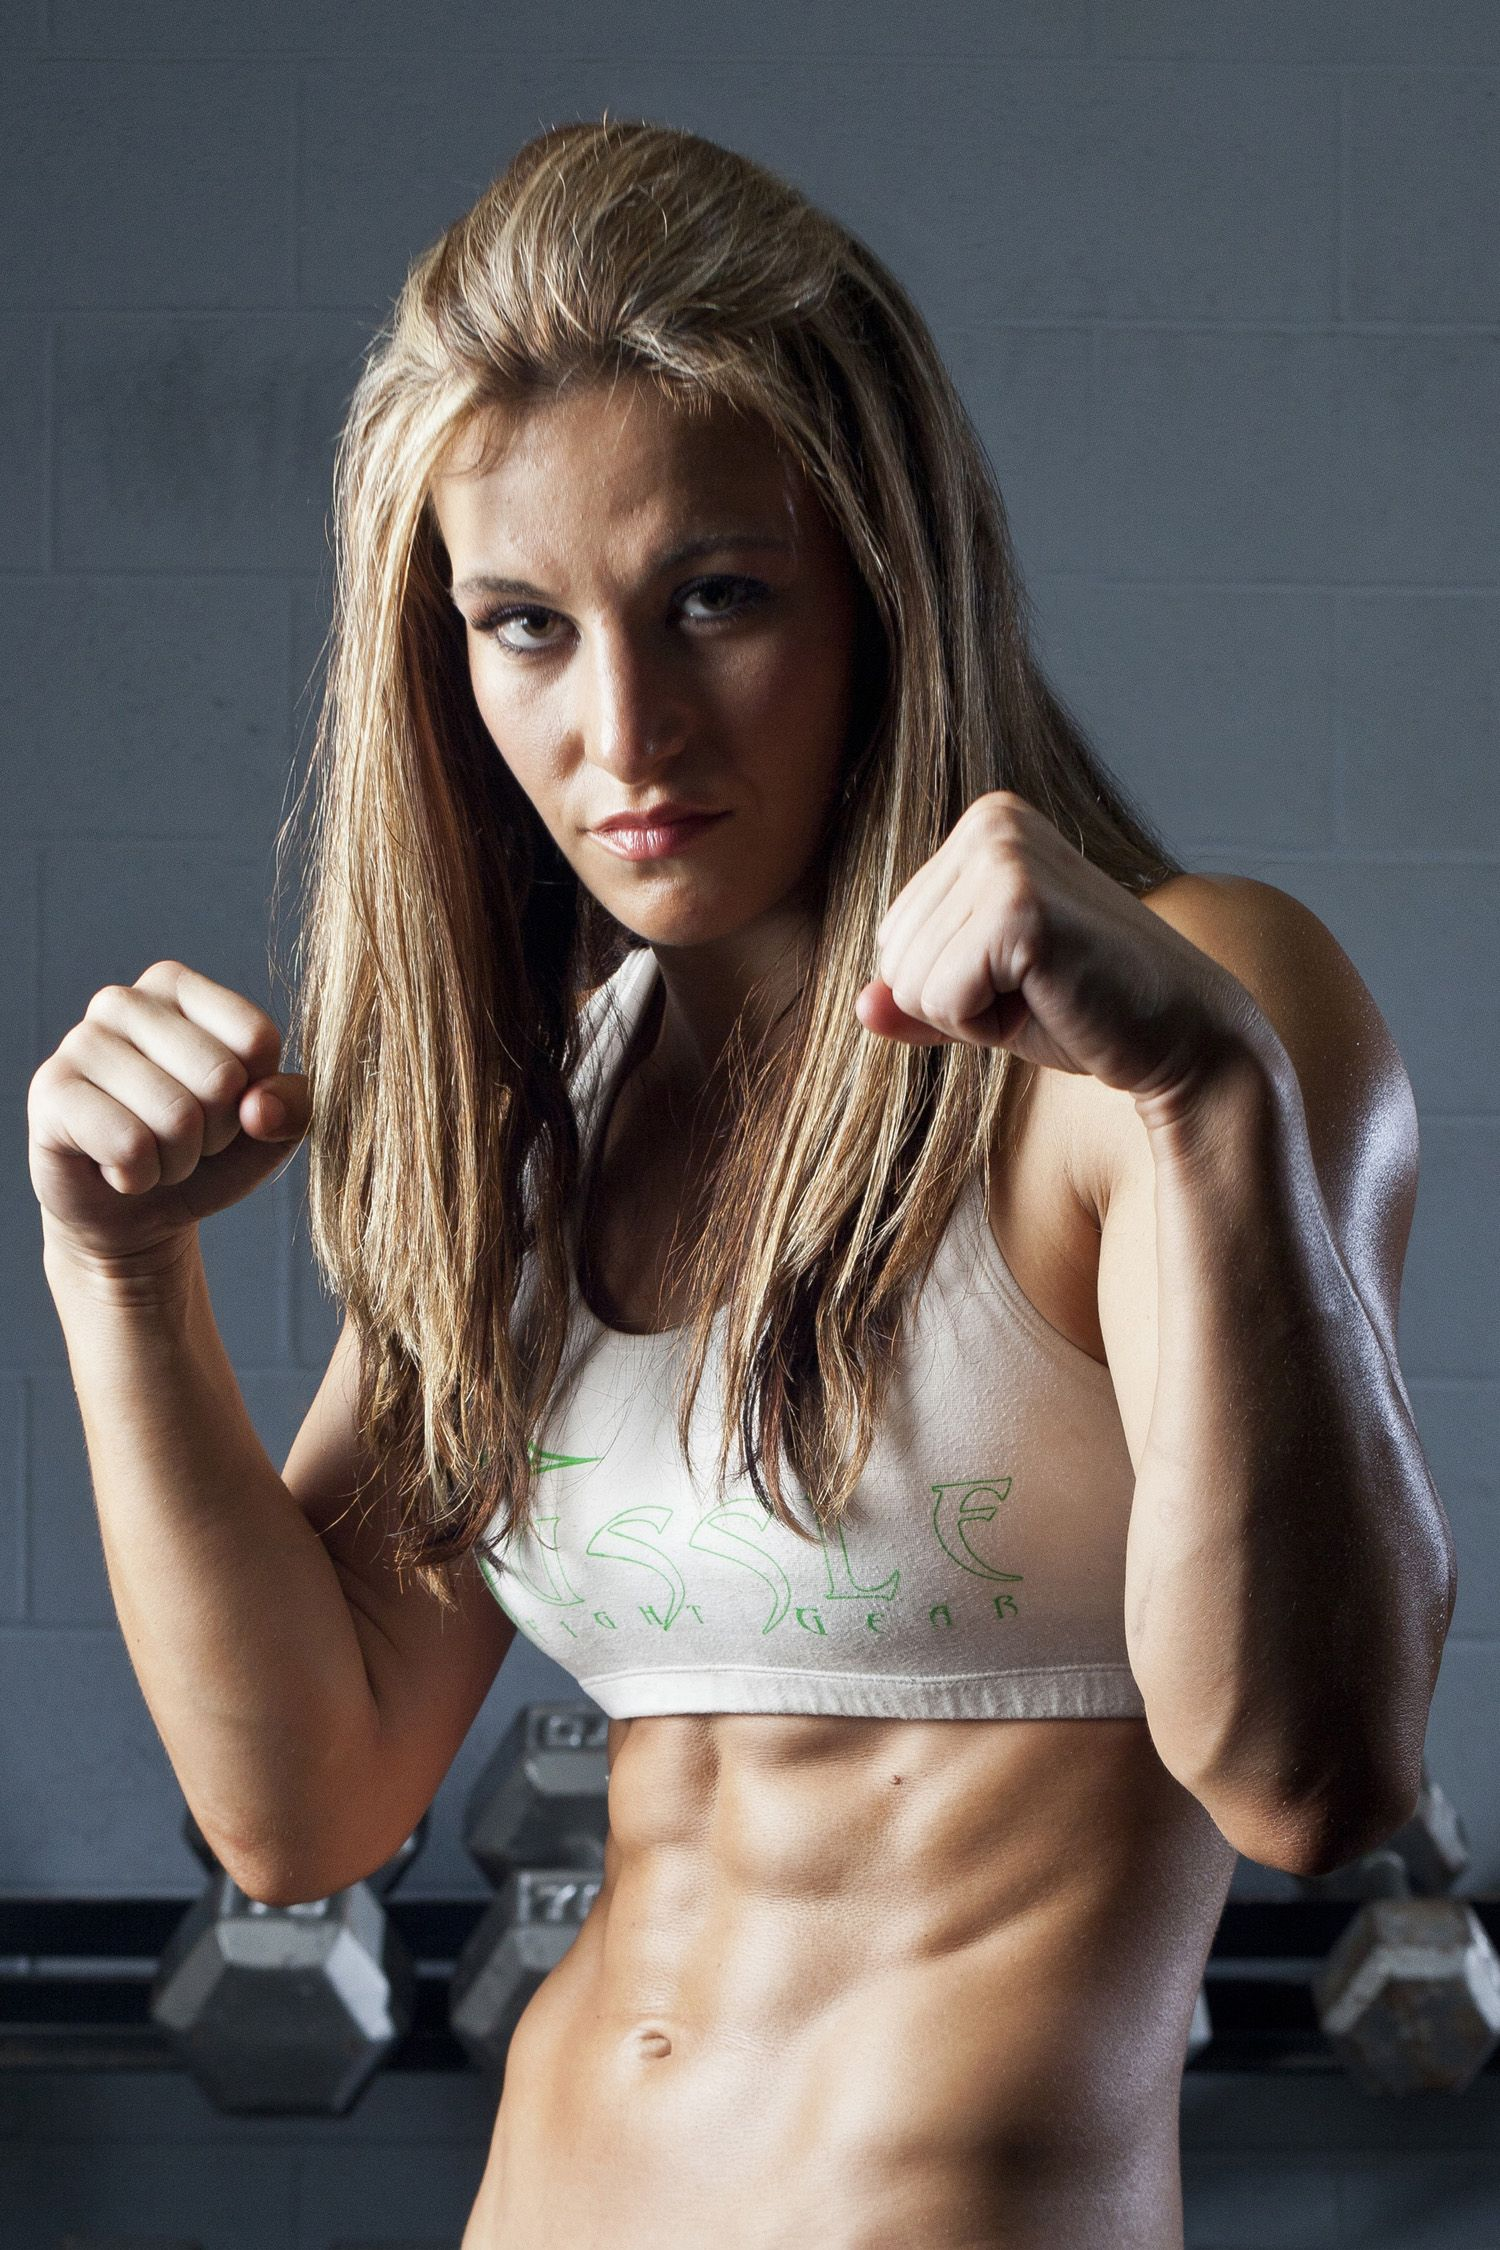 Watch Miesha Tate mixed martial arts video